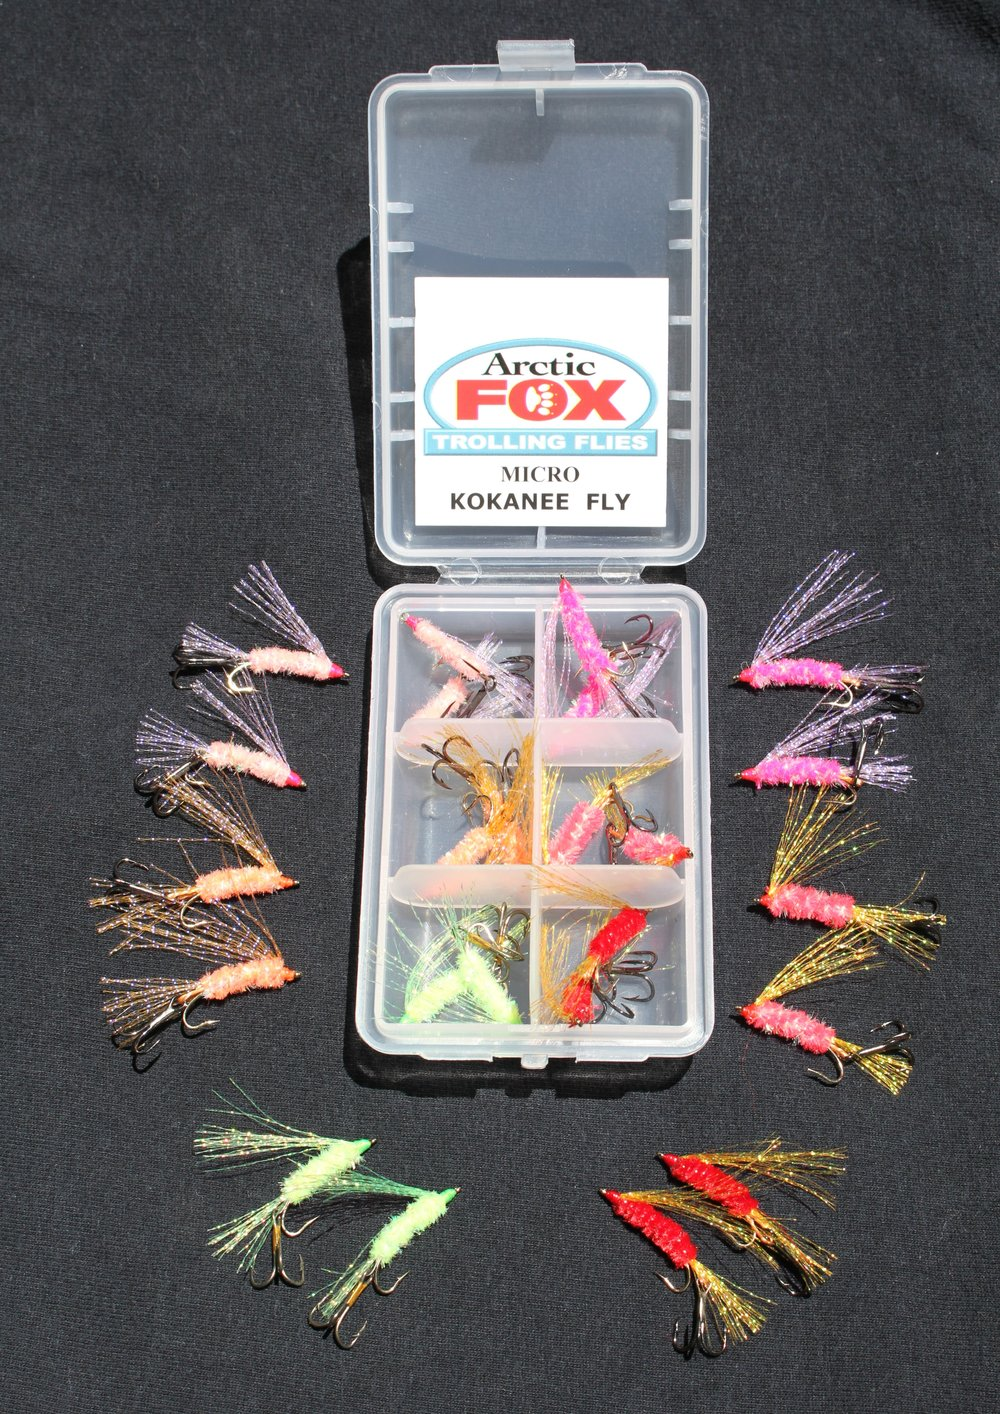 12 Fly Selection  of my most popular Kokanee Flies.   Two each of:  Hot Pink, Shell Pink, Fire Orange, Flo Orange, Chartreuse and Fire Red, in a six compartment plastic box..  Free shipping on orders over $28.00.